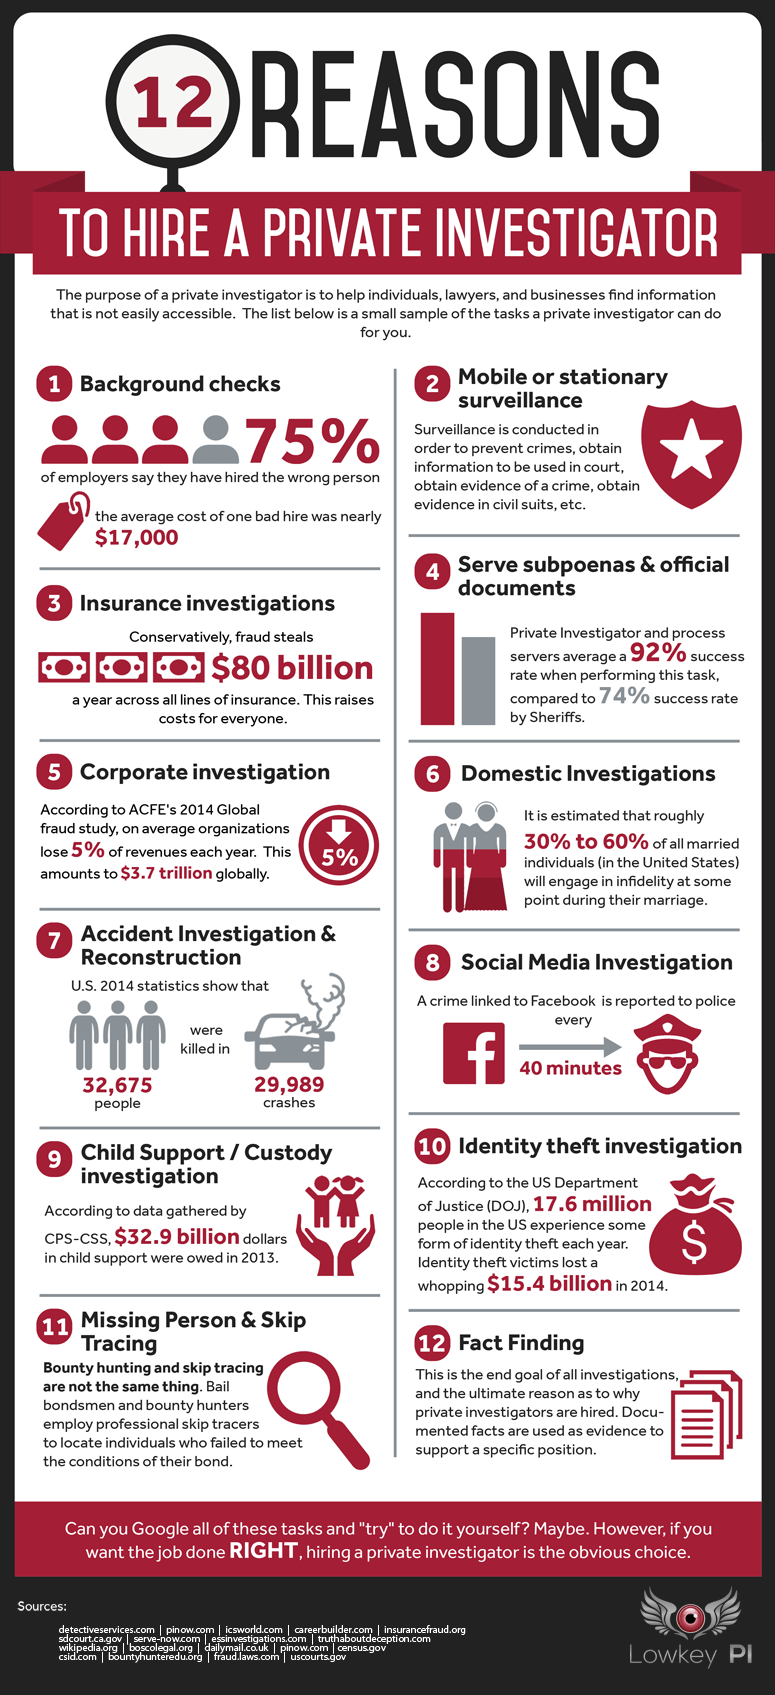 12-reasons-to-hire-a-private-investigator-infographic